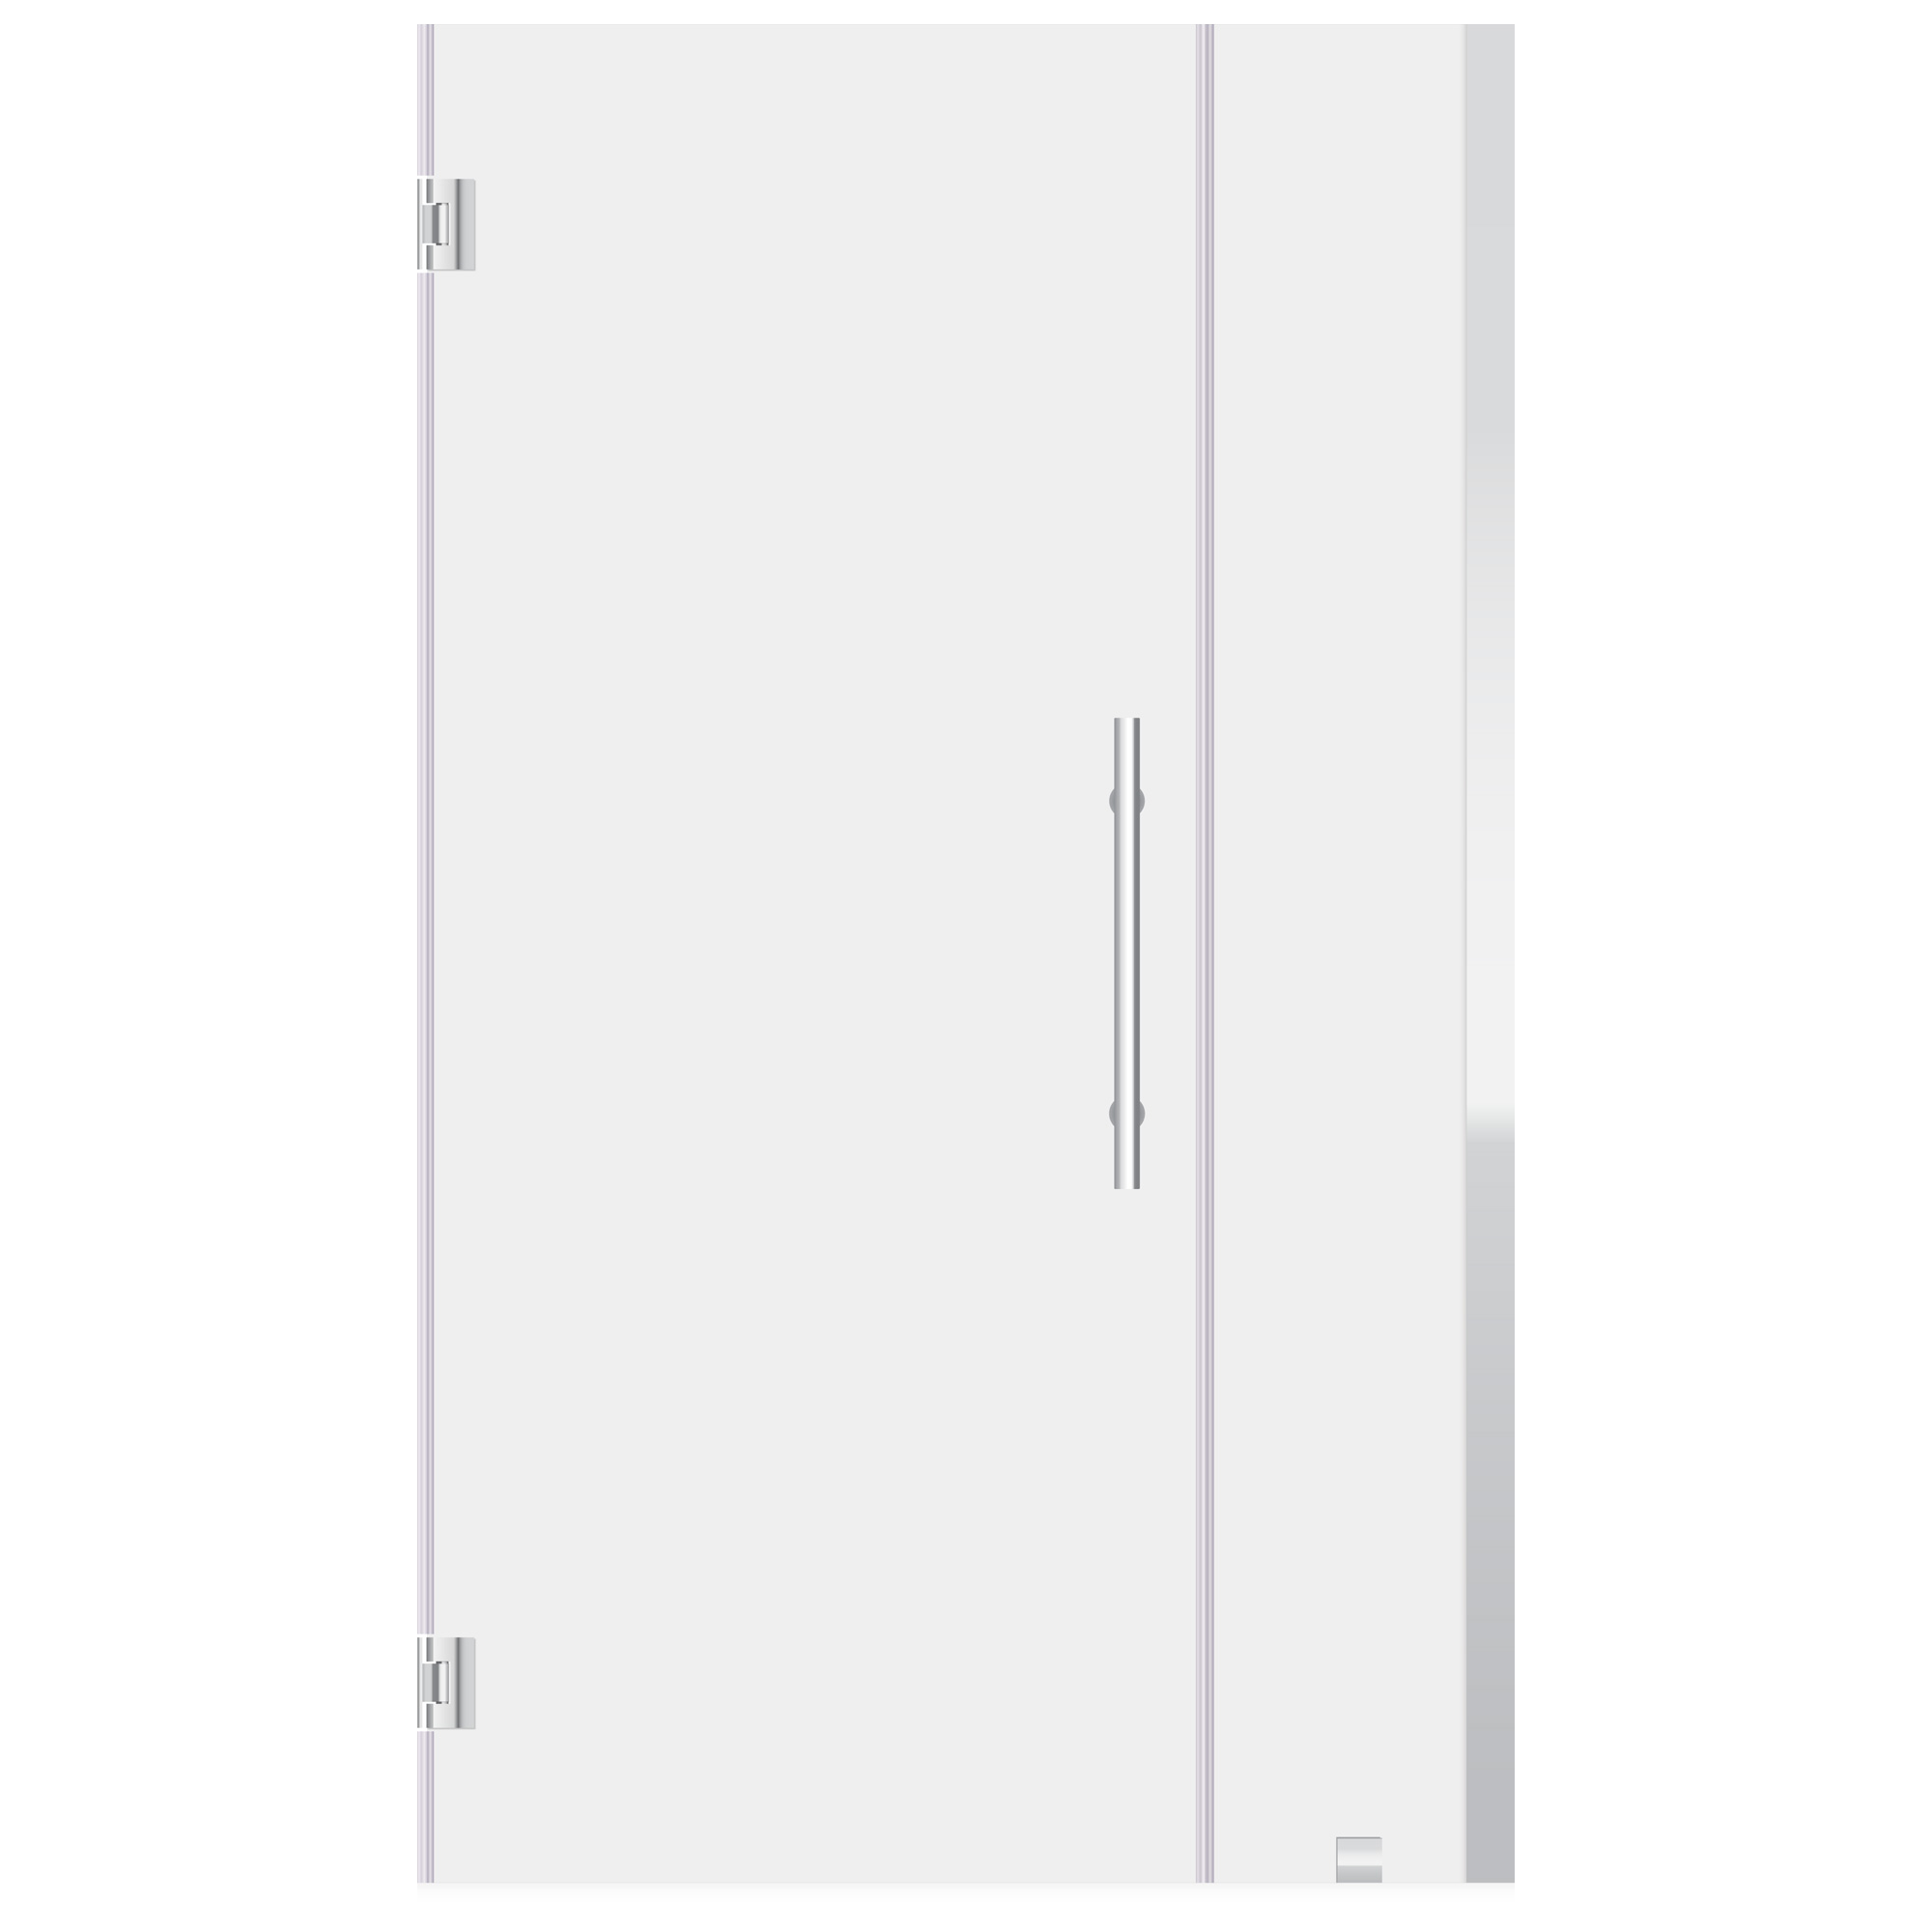 LessCare 32-33 W x 72 H Swing-Out Shower Door Chrome ULTRA-E